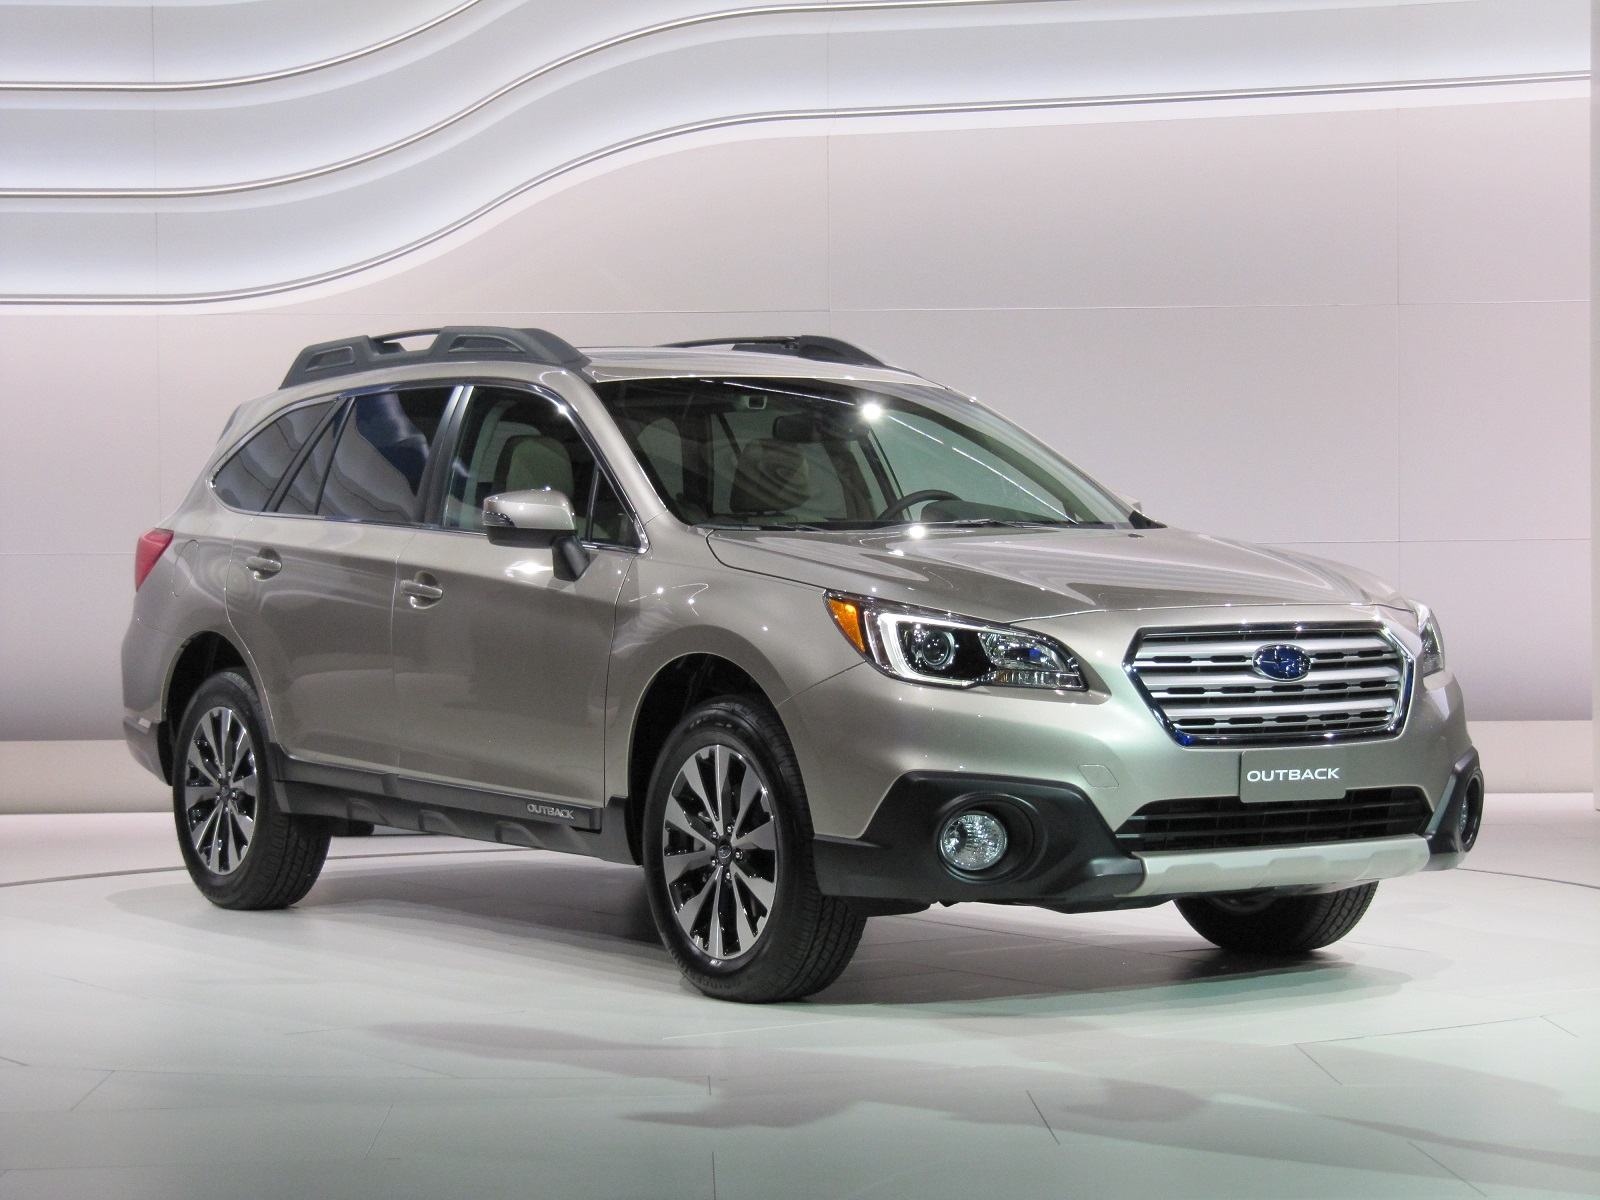 2015 Subaru Outback Introduction At 2014 New York Auto